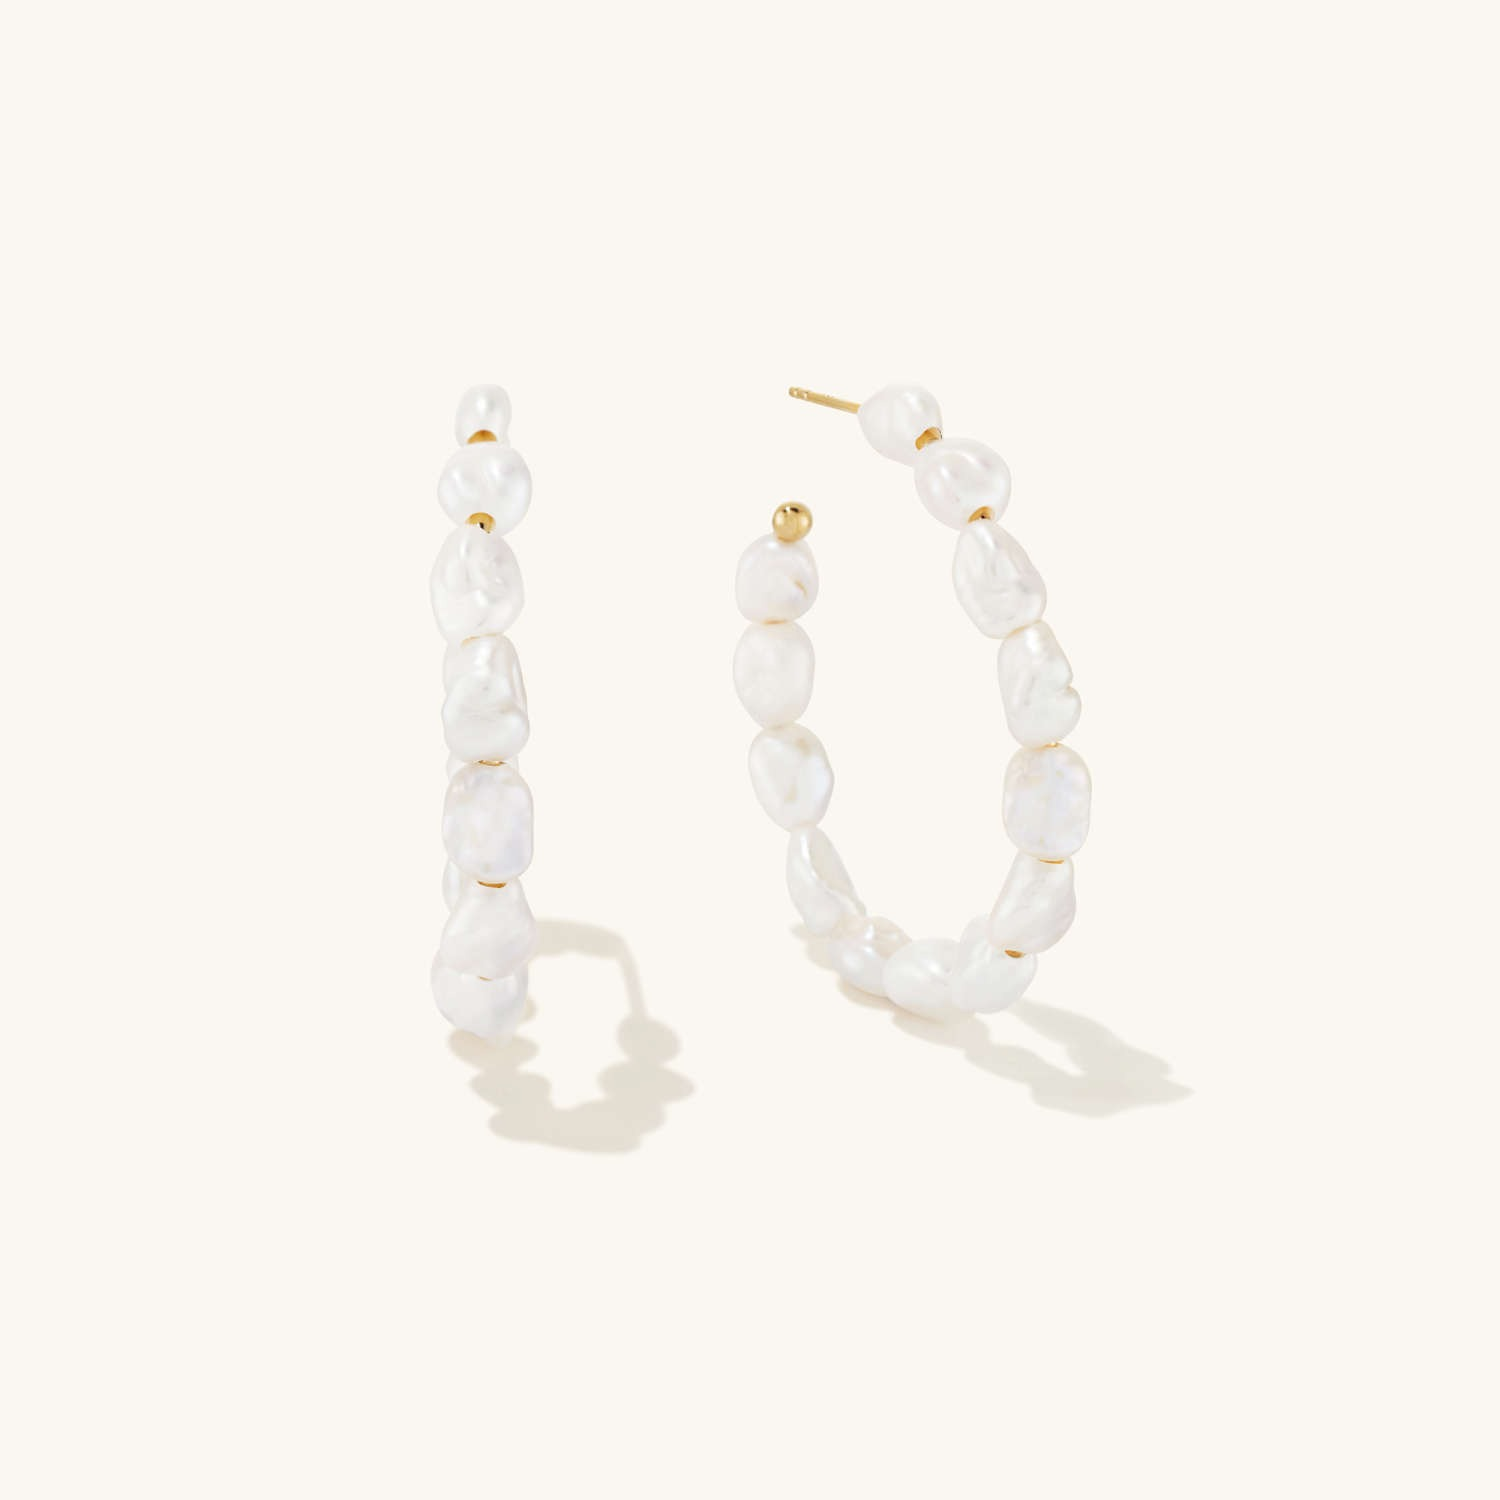 Statement pearl earrings with gold posts